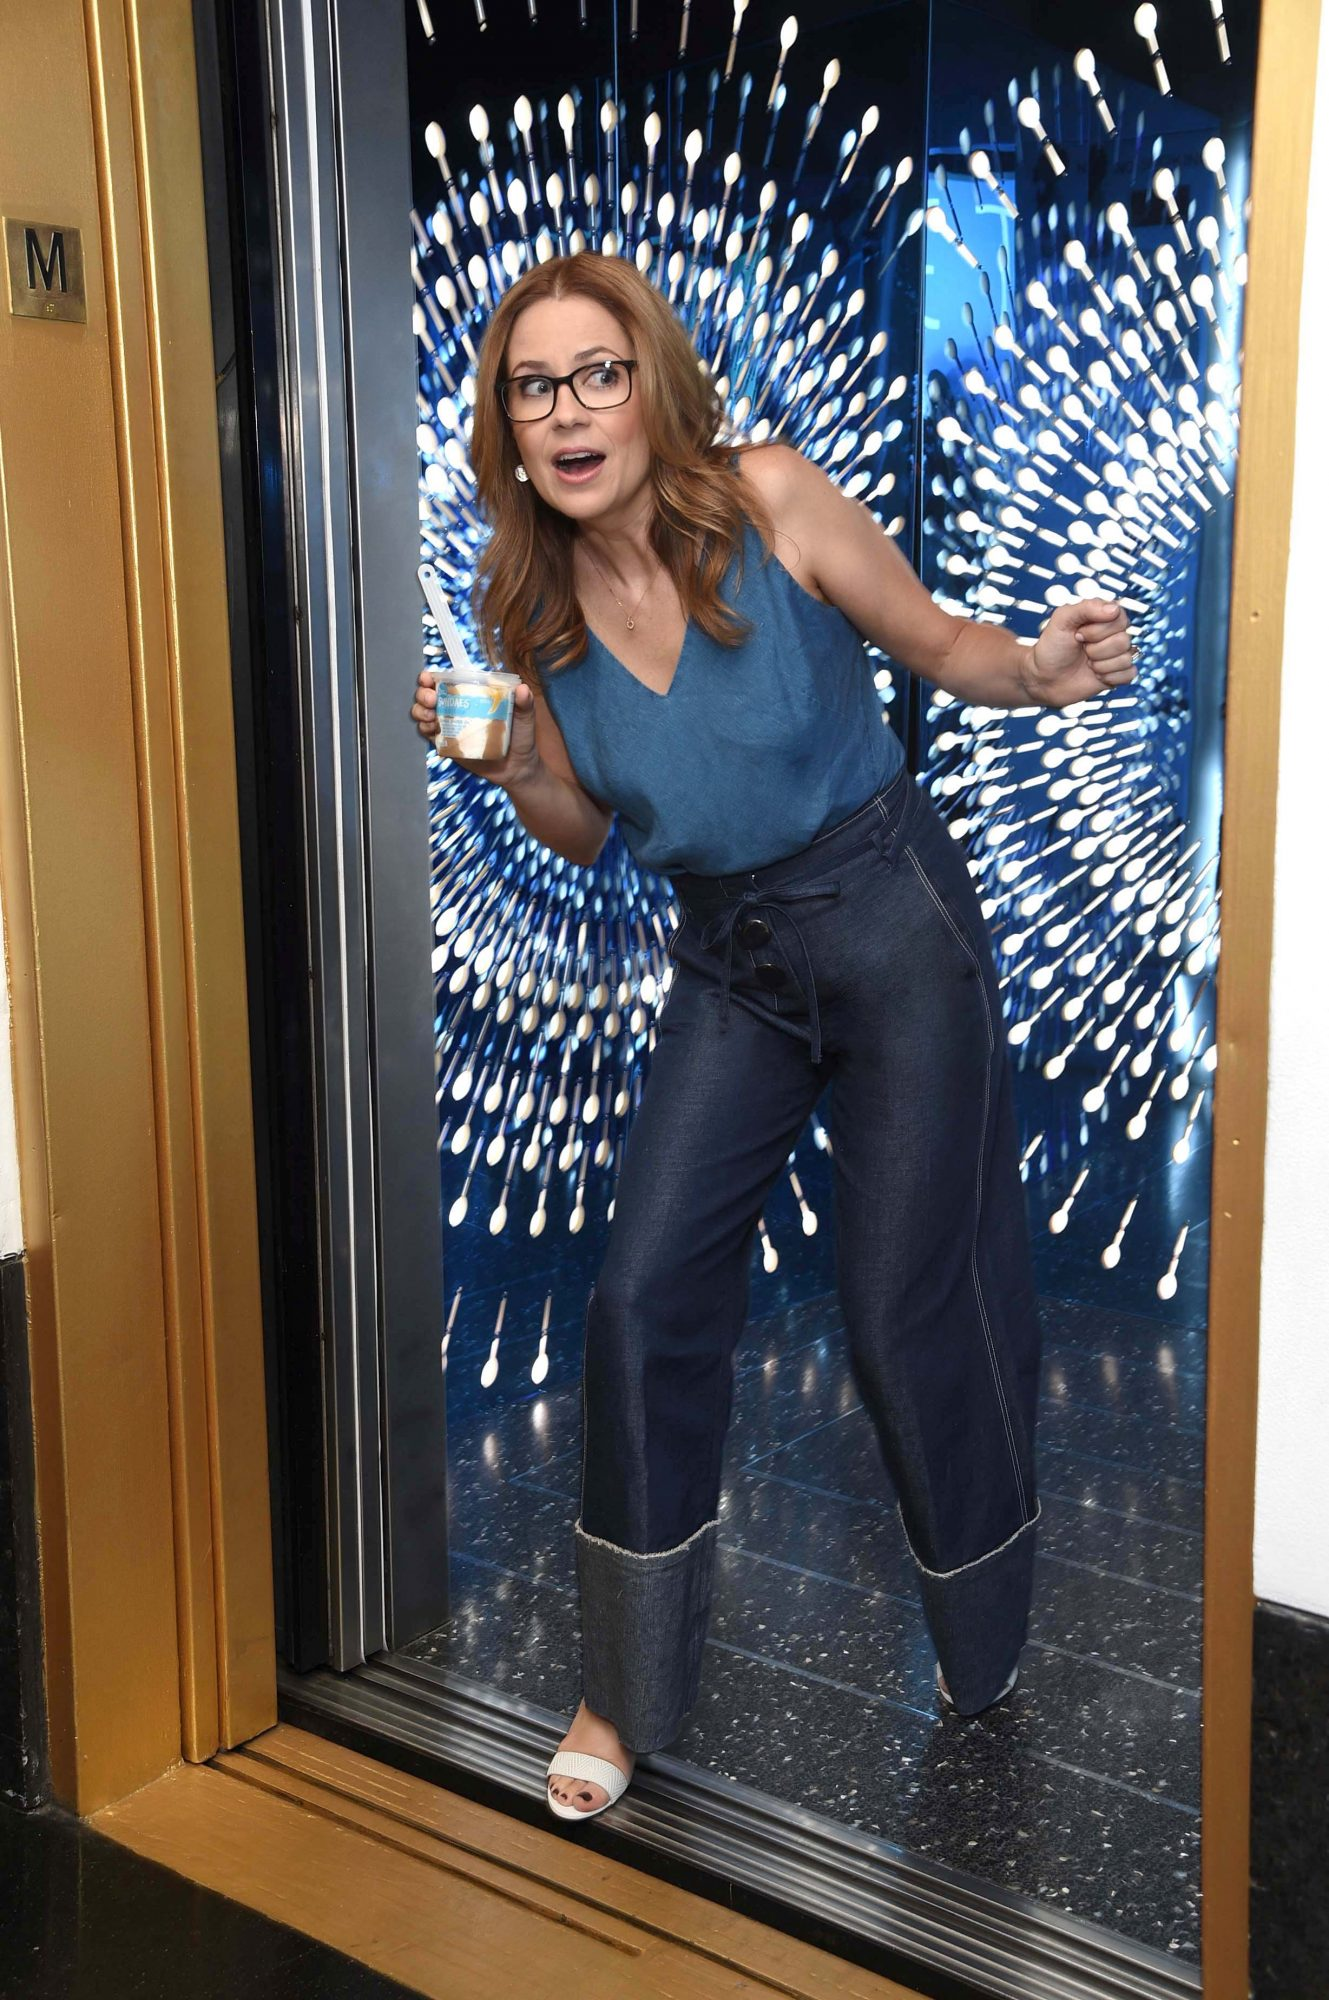 HERO-Elevator-Blue-Bunny-Jenna-Fischer-Credit-Michael-Simon-for-Blue-B....jpg